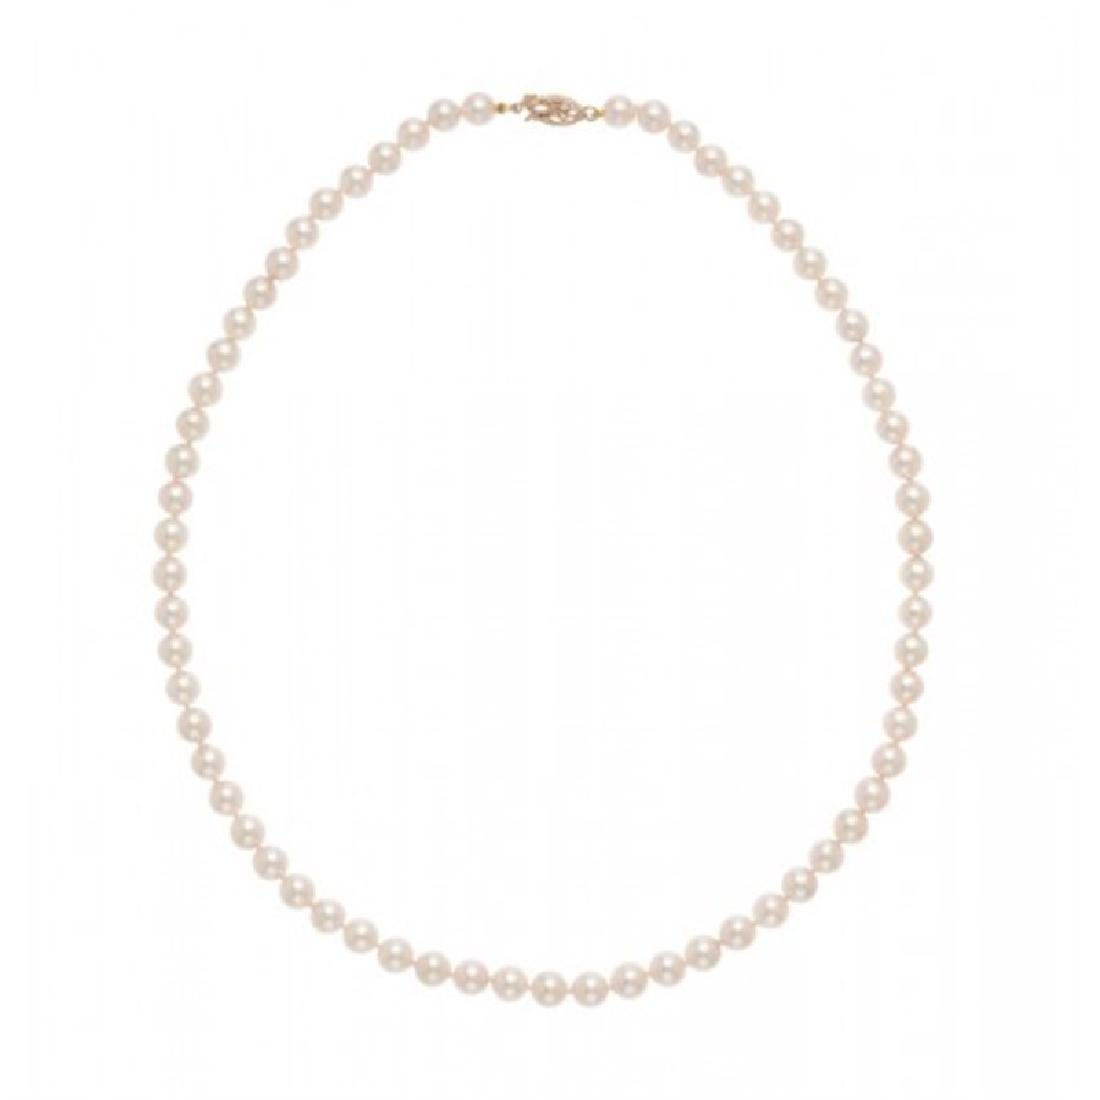 6.0-6.5mm Japanese Akoya Pearl Necklace